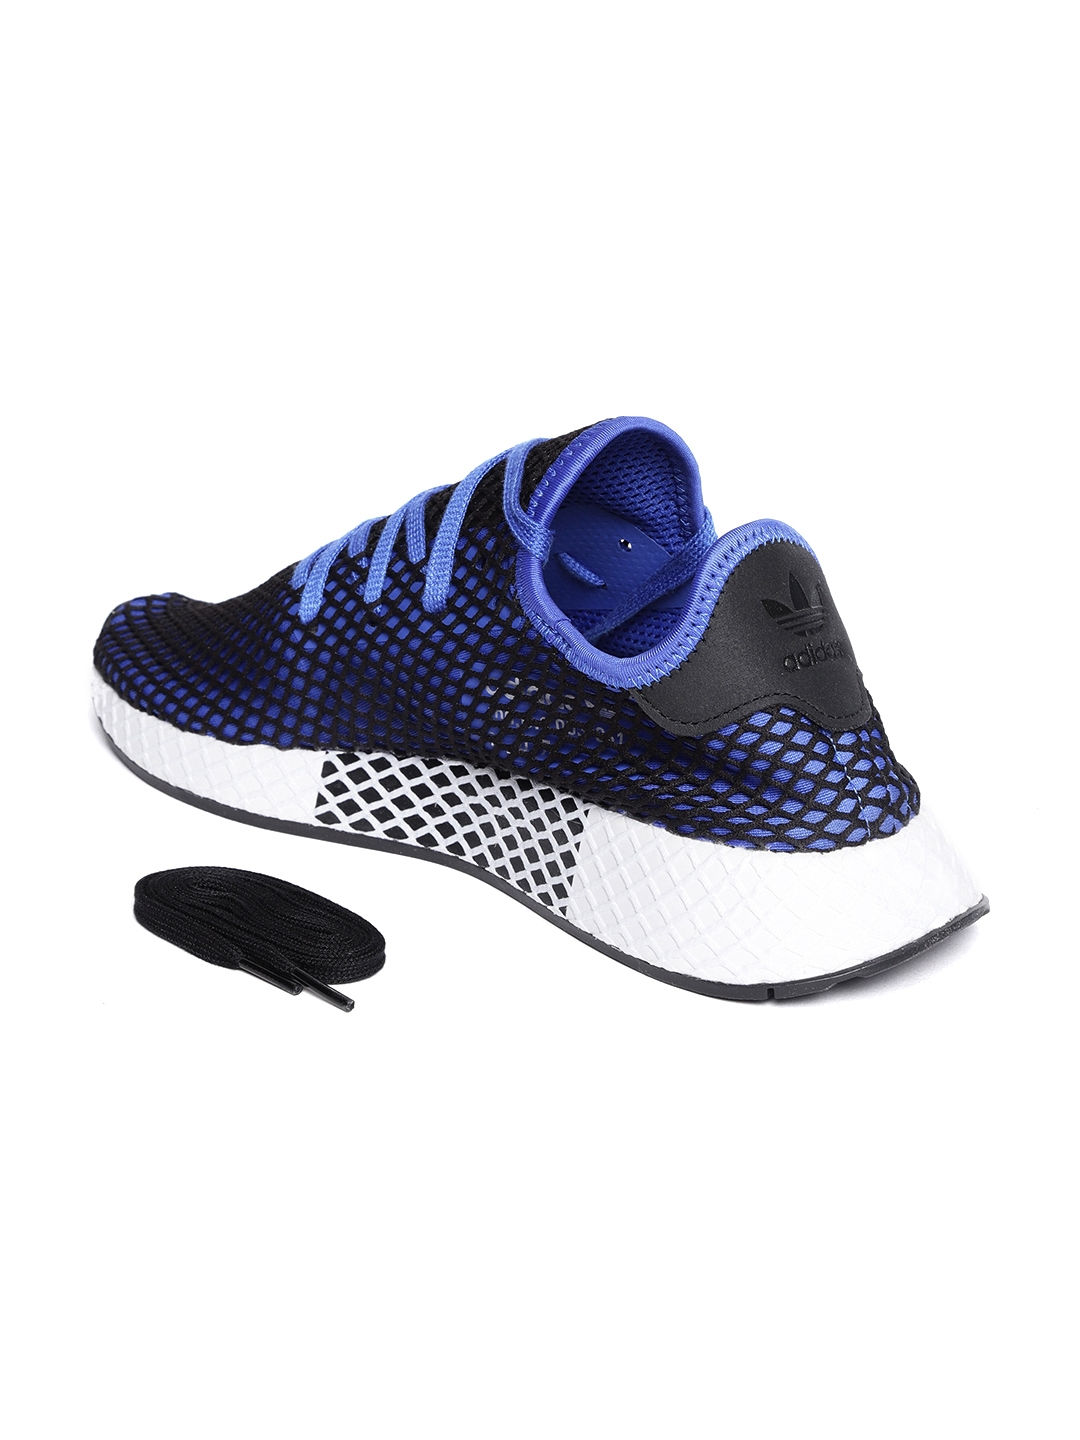 de6ecca439536 Buy Adidas Originals Men Blue   Black DEERUPT Runner Sneakers ...